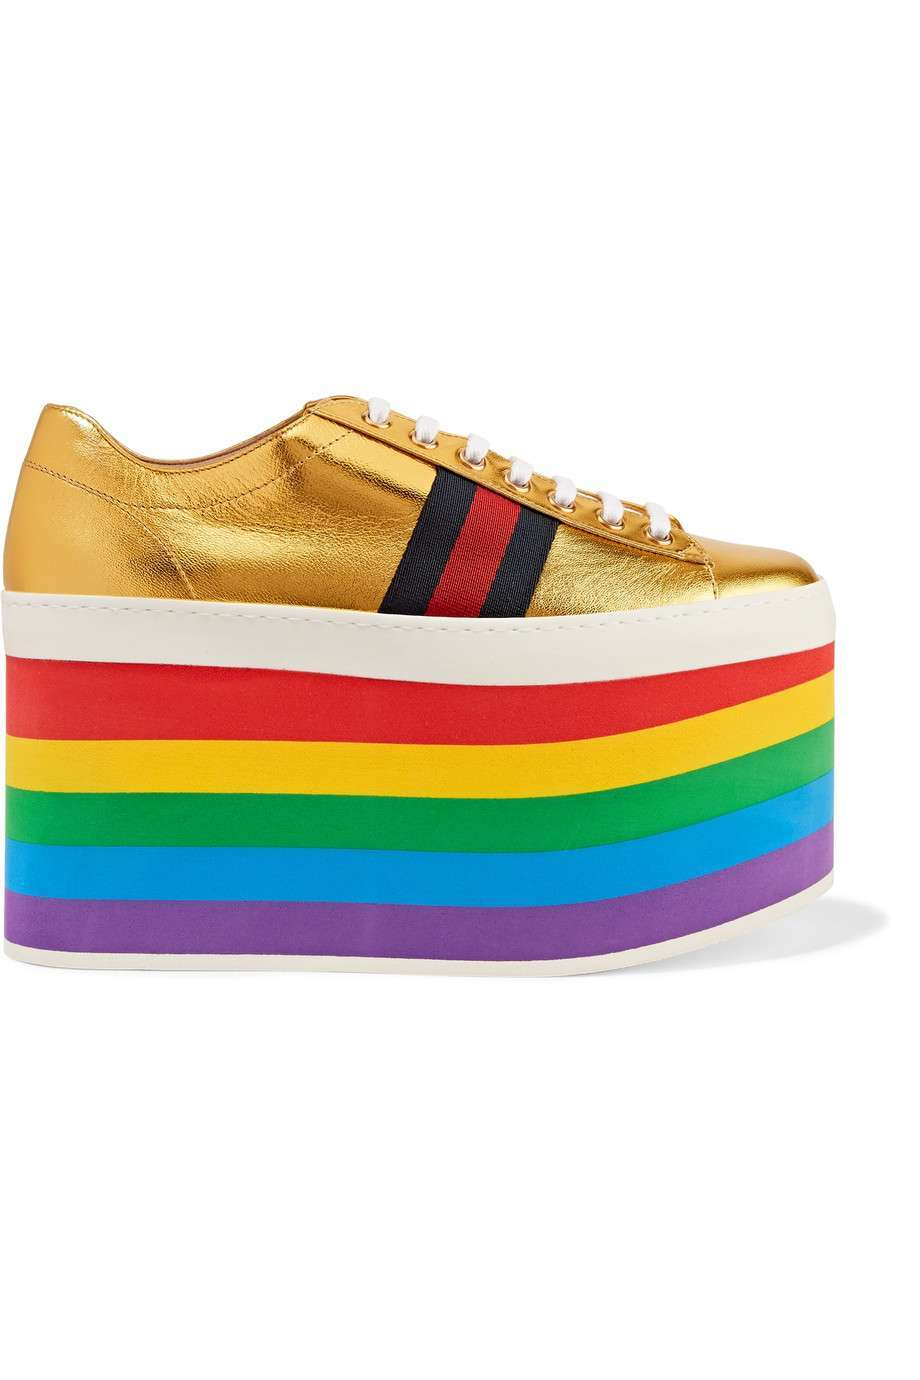 Sneakers platform Gucci